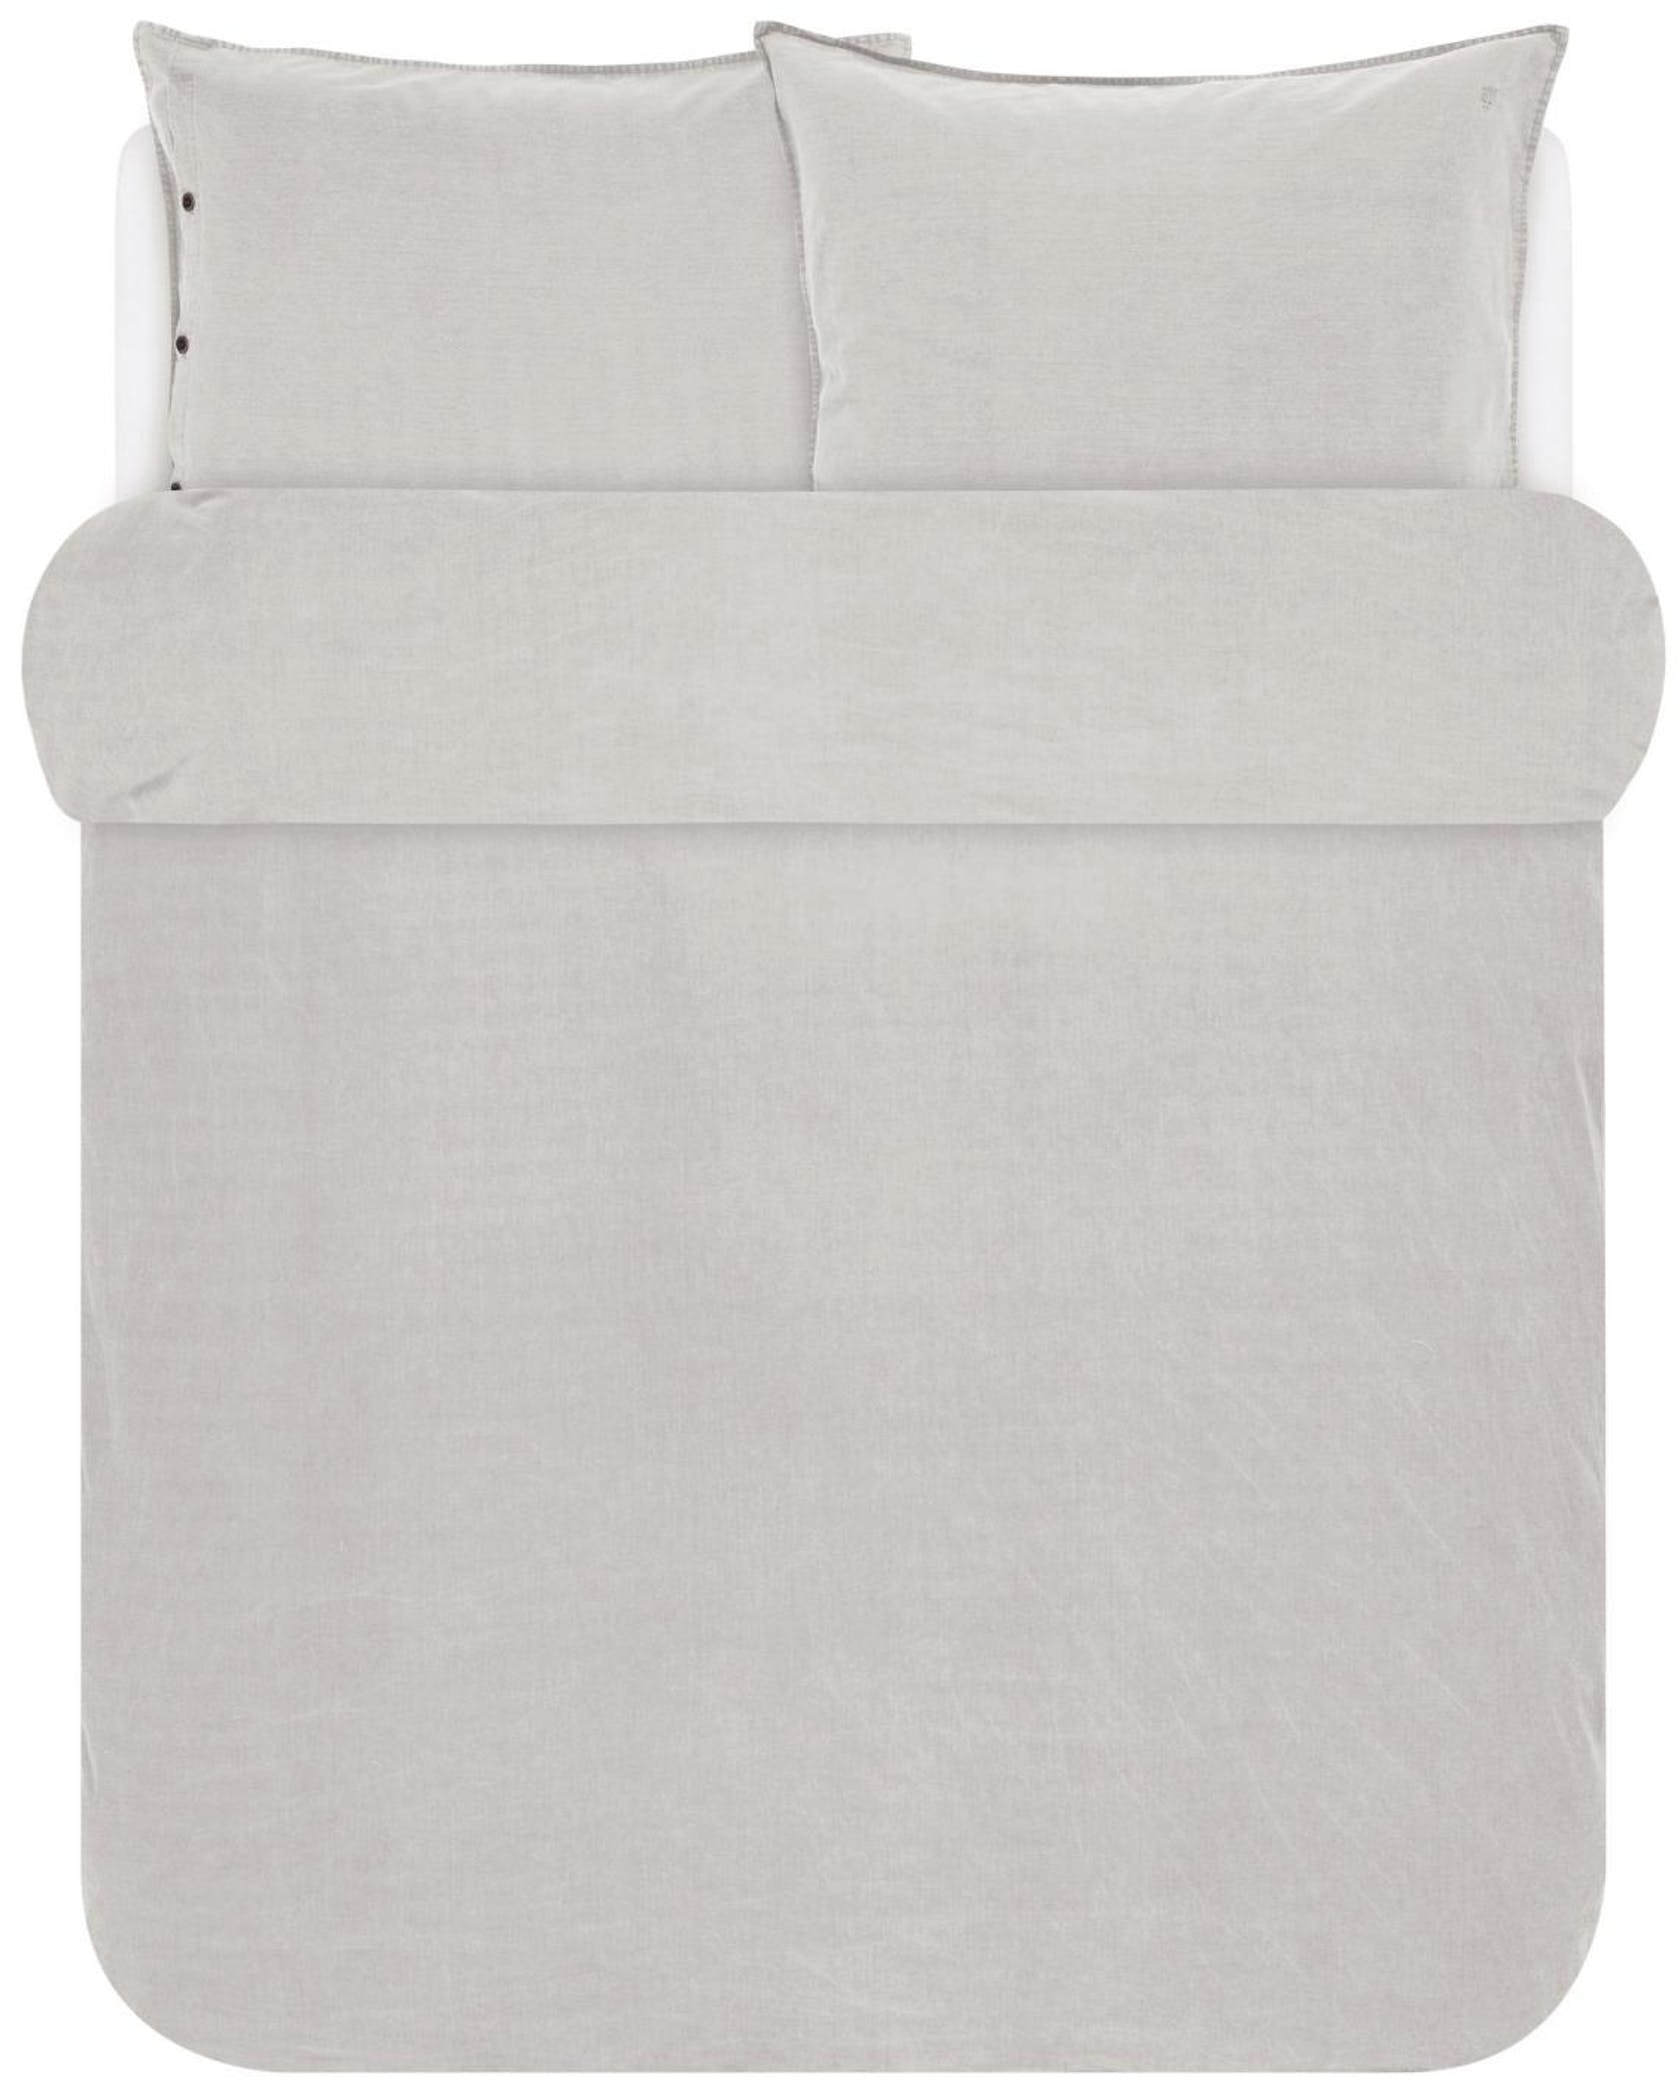 Marc O'Polo Senja Soft oatmeal Duvet cover 200 x 220